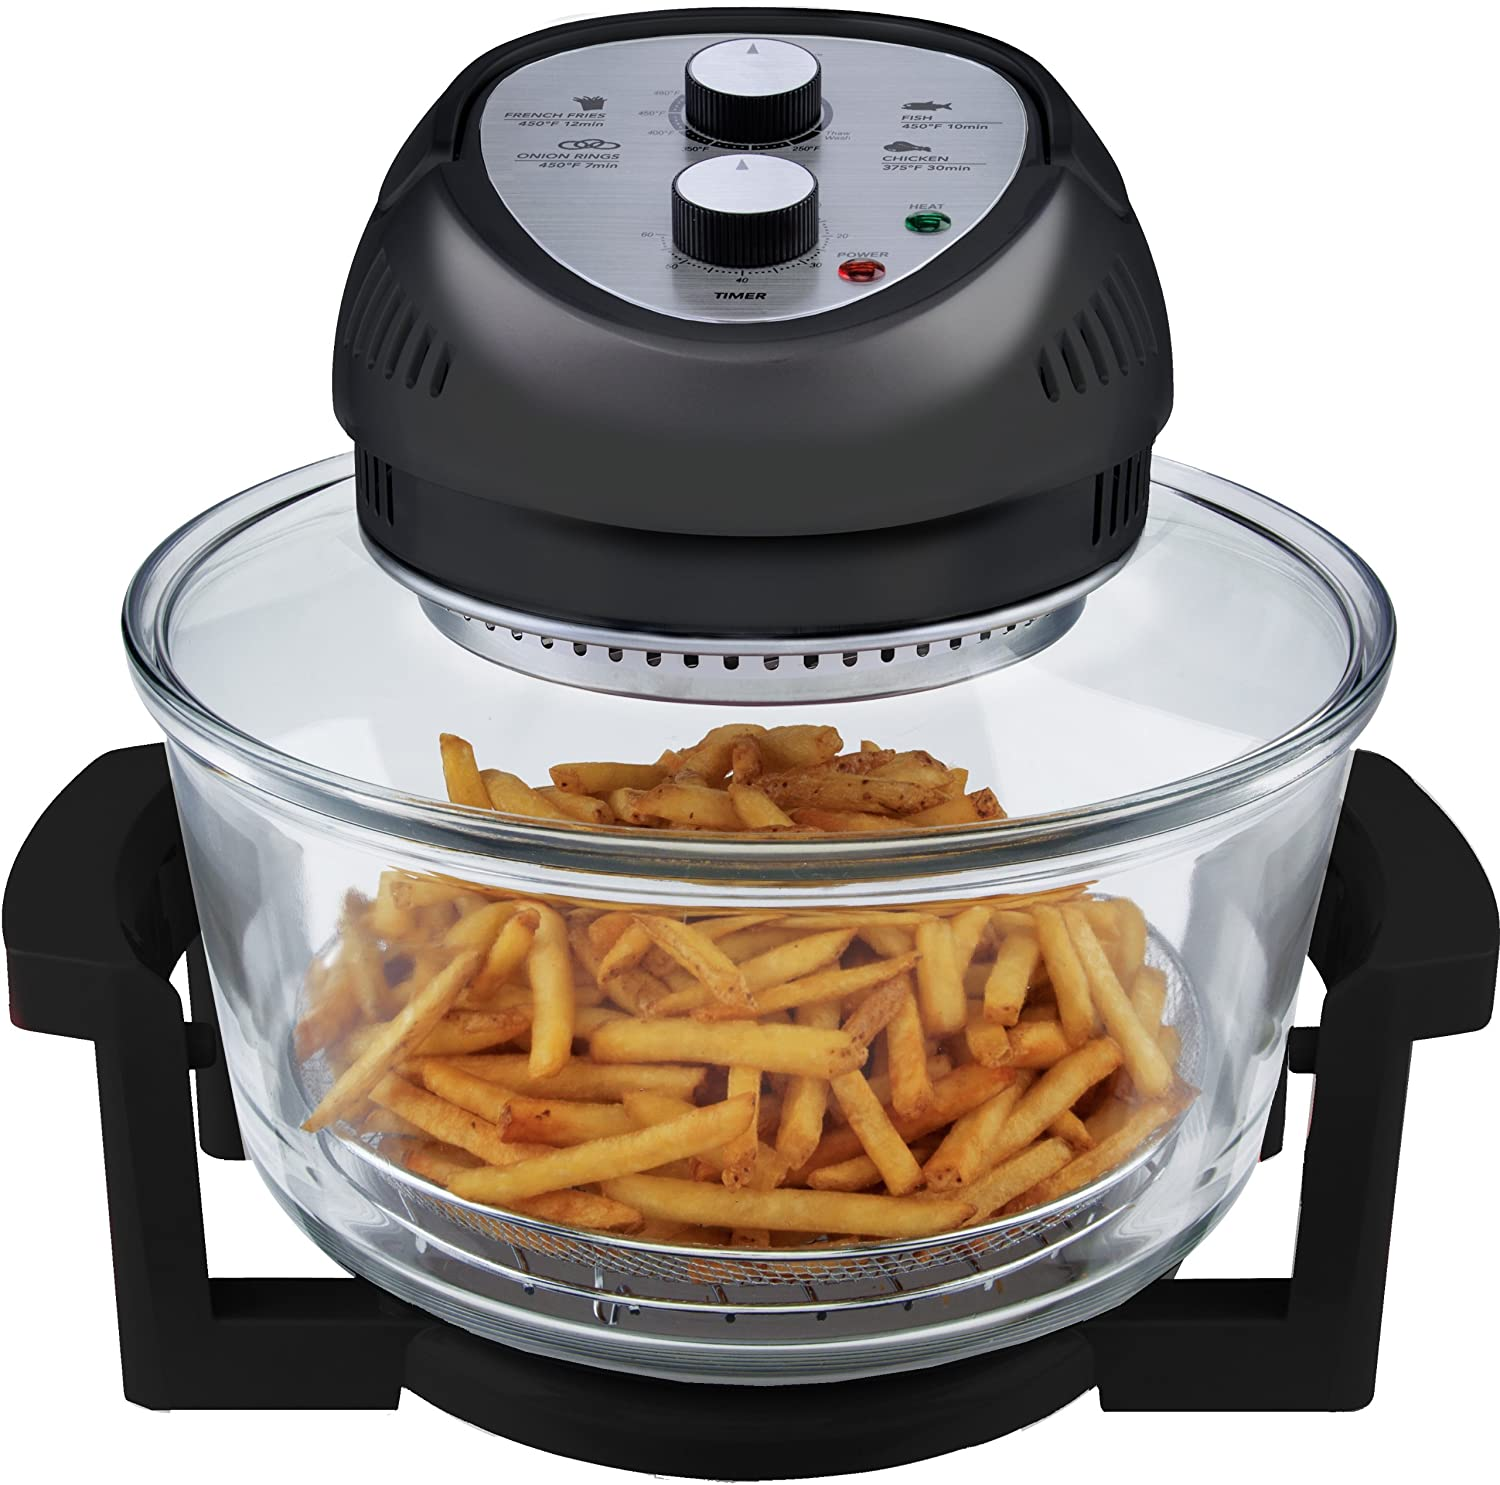 Big Boss Black Oil-less Air Fryer